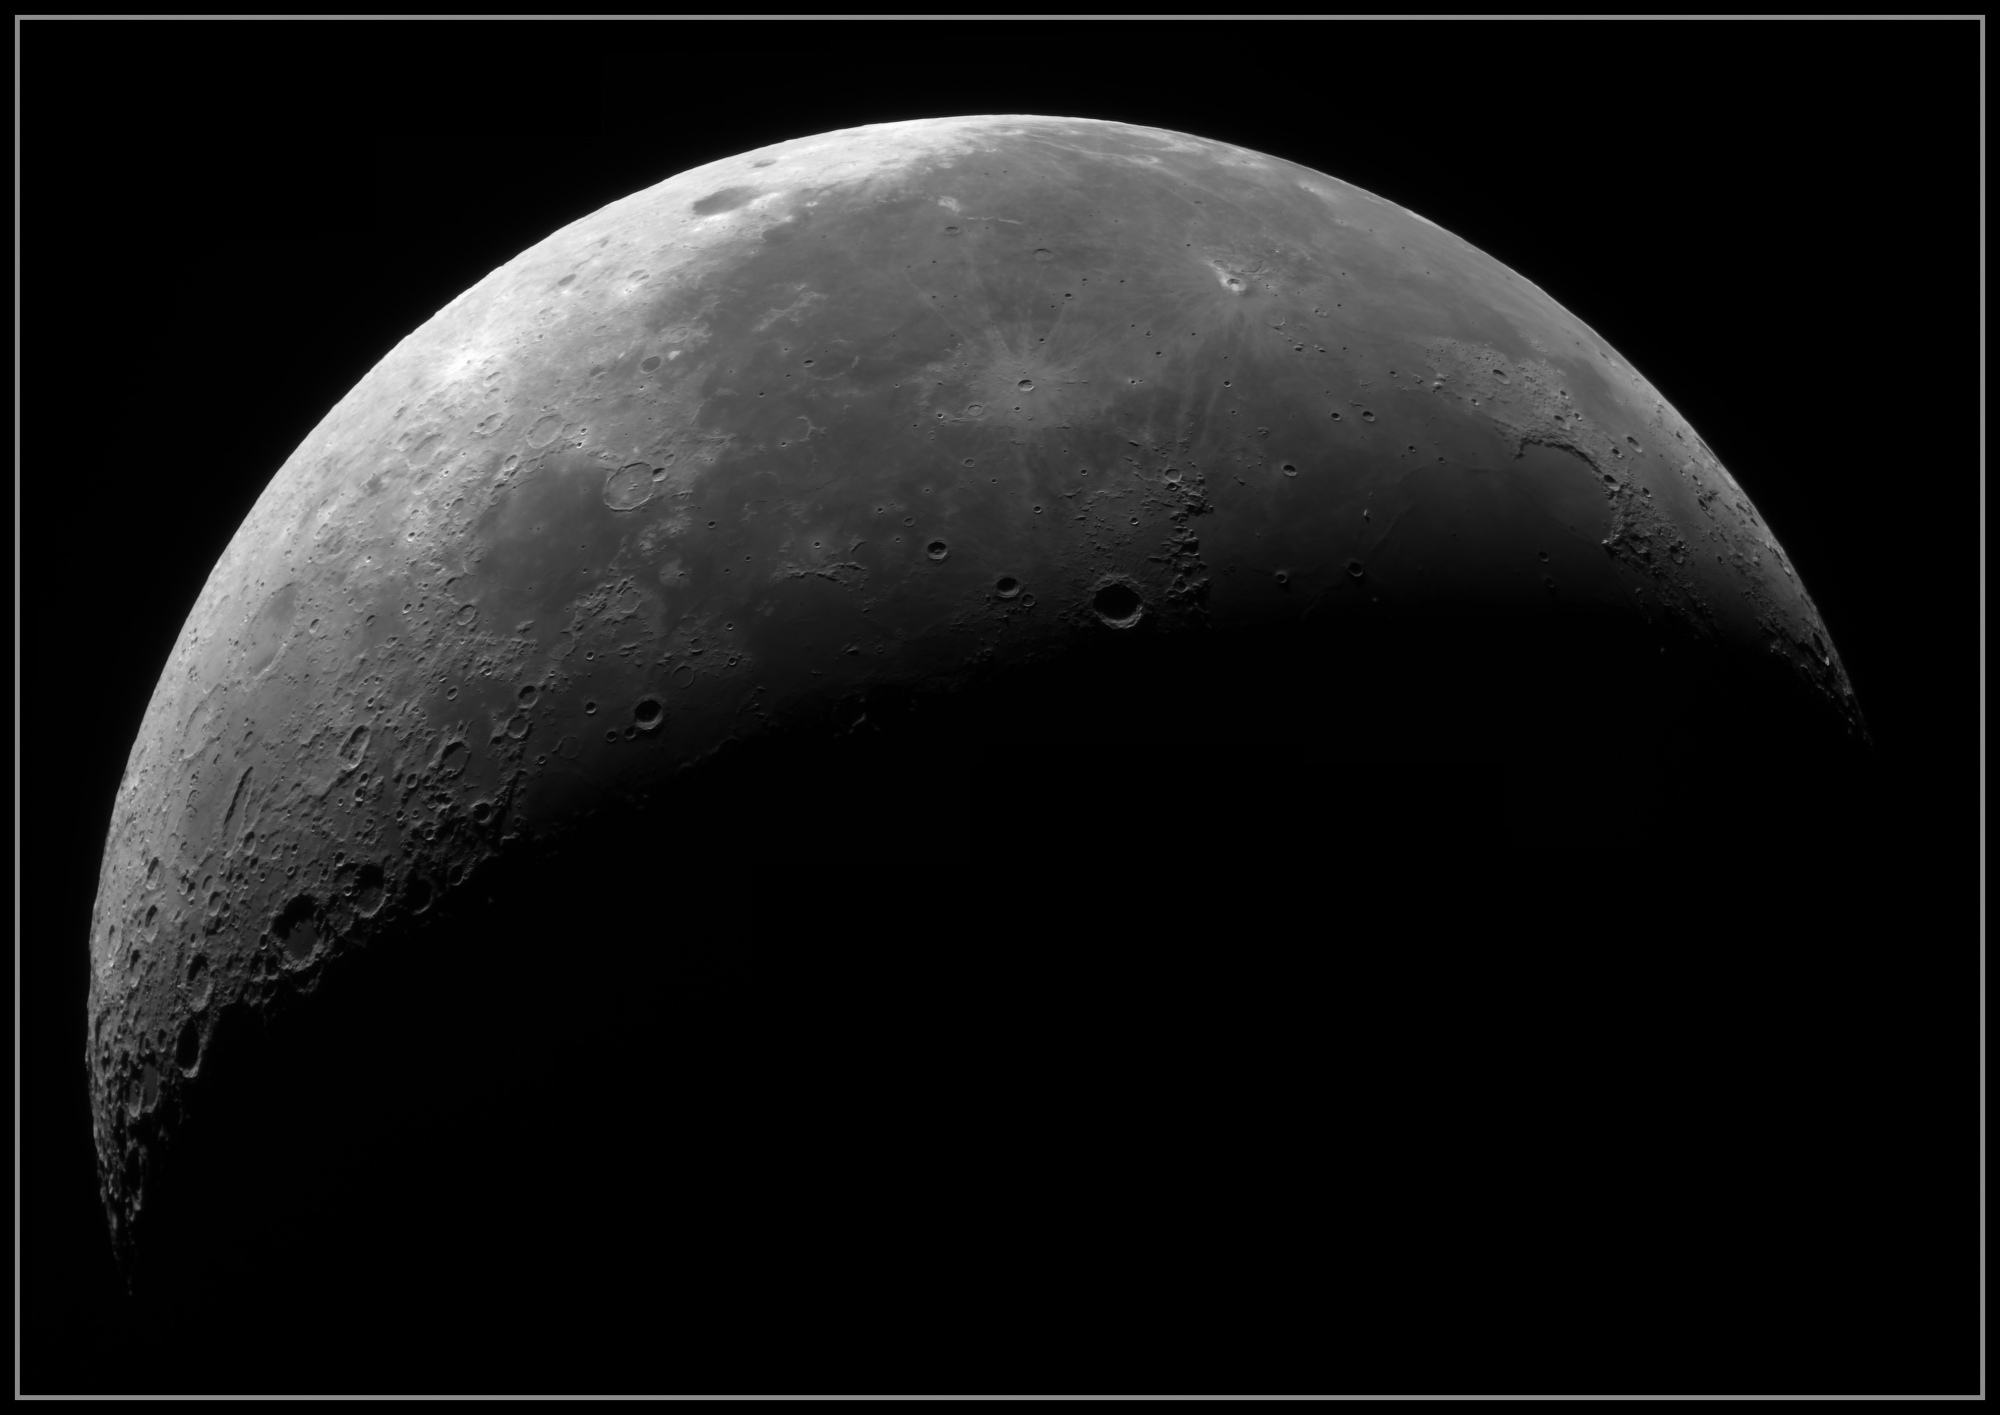 5e28a0cfa1619_Moon_074606_190120_ZWOASI290MM_IR_742nm_AS_P25_lapl6_ap151_stitch-.thumb.jpg.cfae38bfd2cc4722e31fb030e6e4b61d.jpg